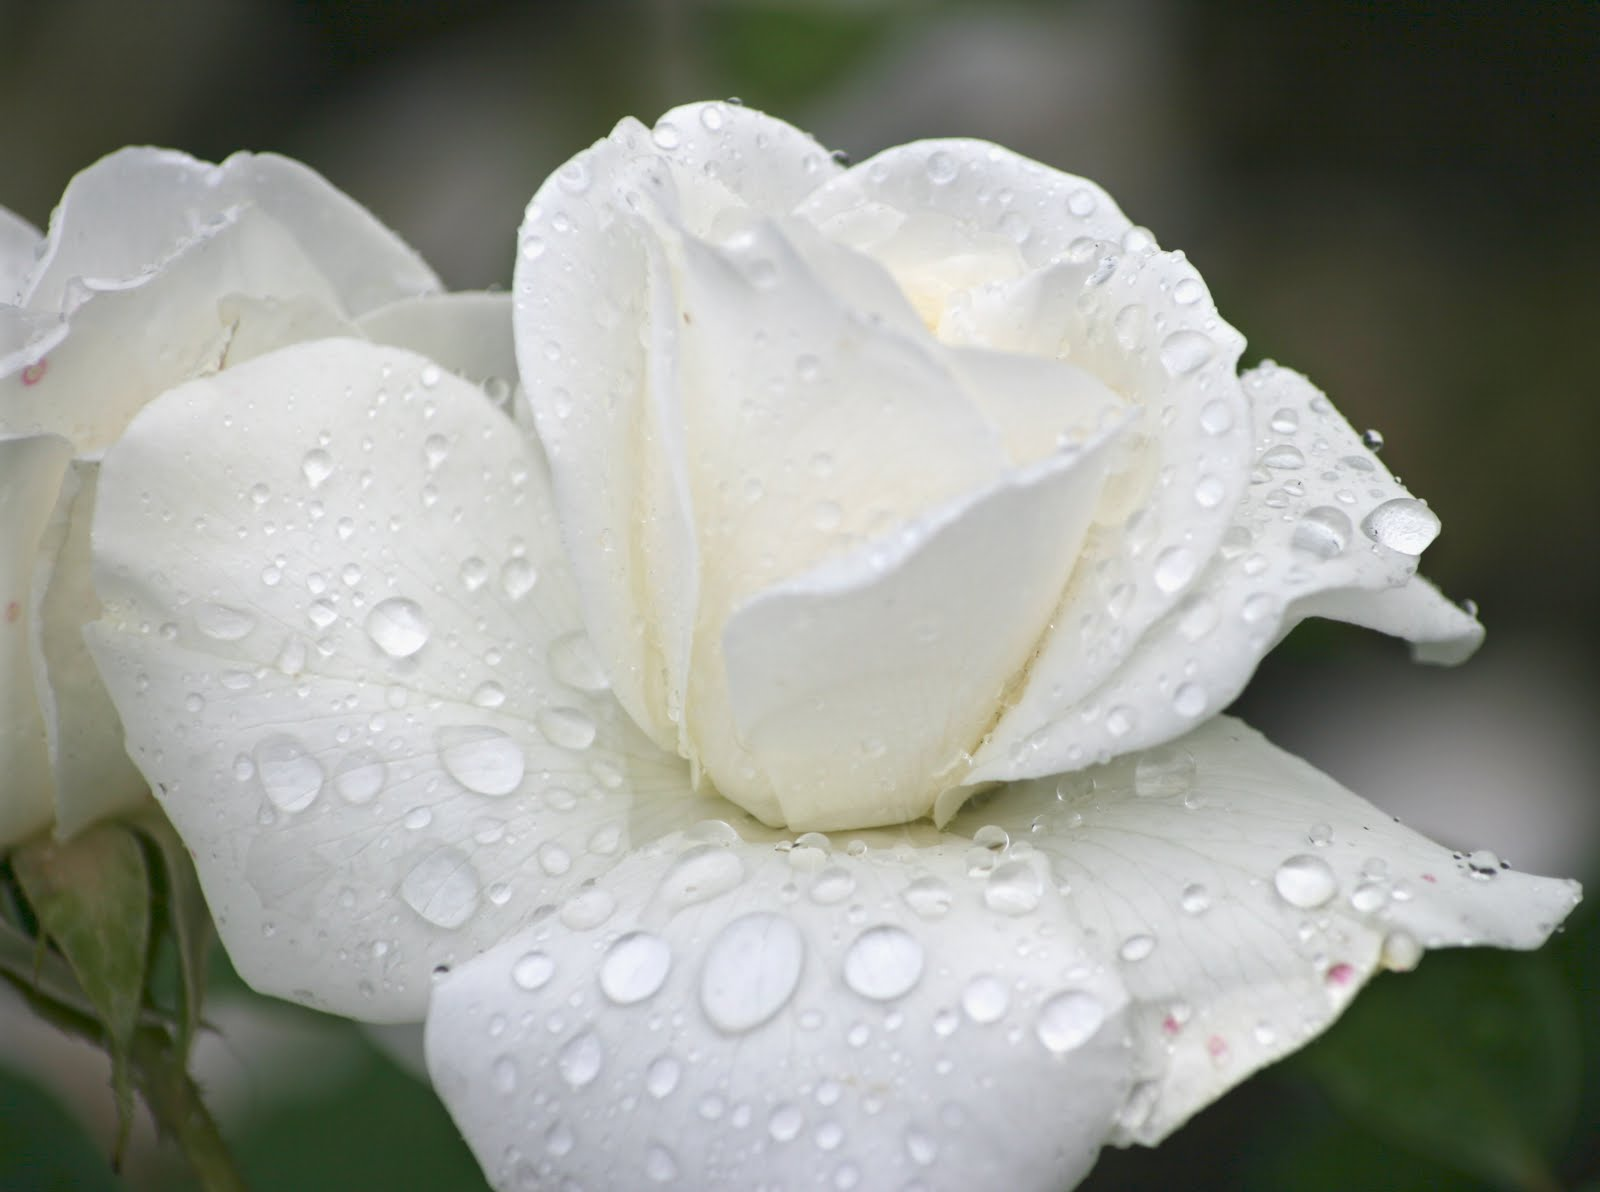 45 Most Beautiful White Flowers In The World That Are ...  |Beautiful White Rose Flowers